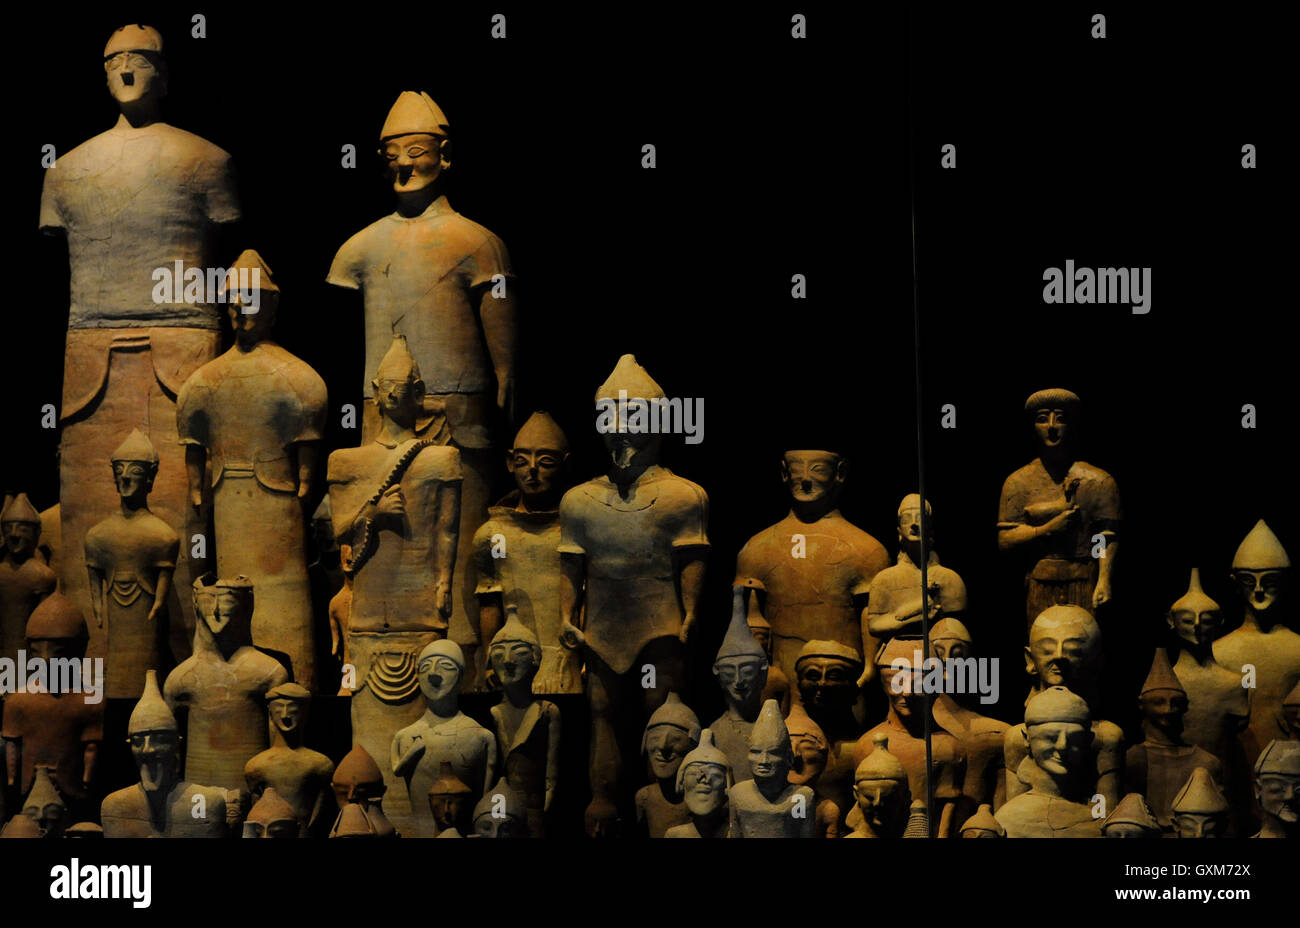 Sanctuary of Ayia Irini (1200-1st century BC). Cyprus. Statues and terracotta figurines found around the altar. - Stock Image